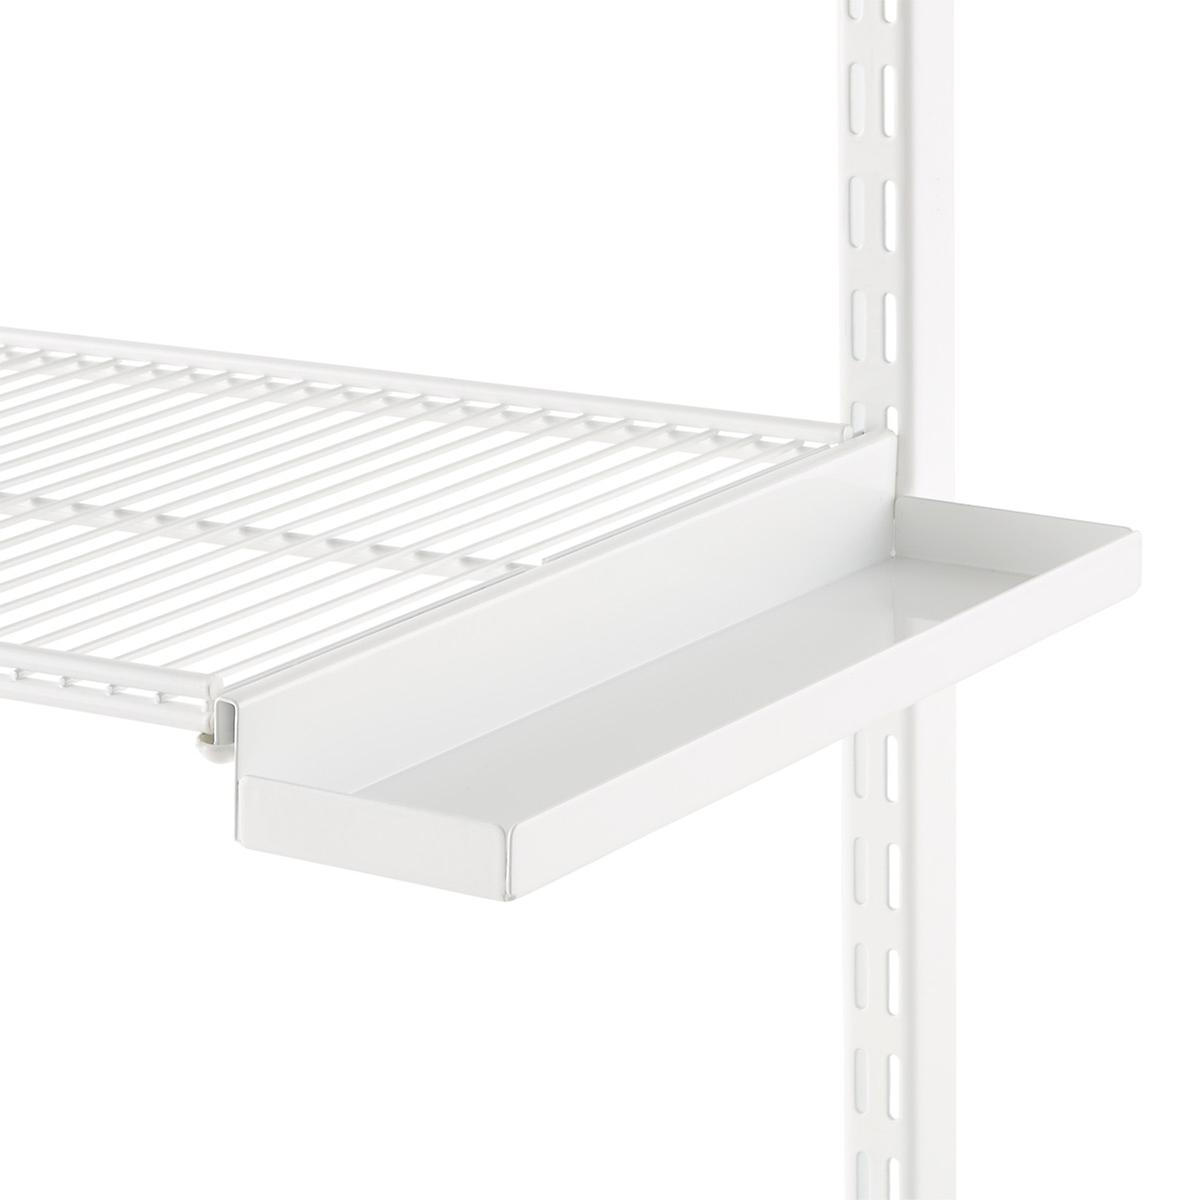 White elfa Ventilated Wire Shelf Bracket Trays